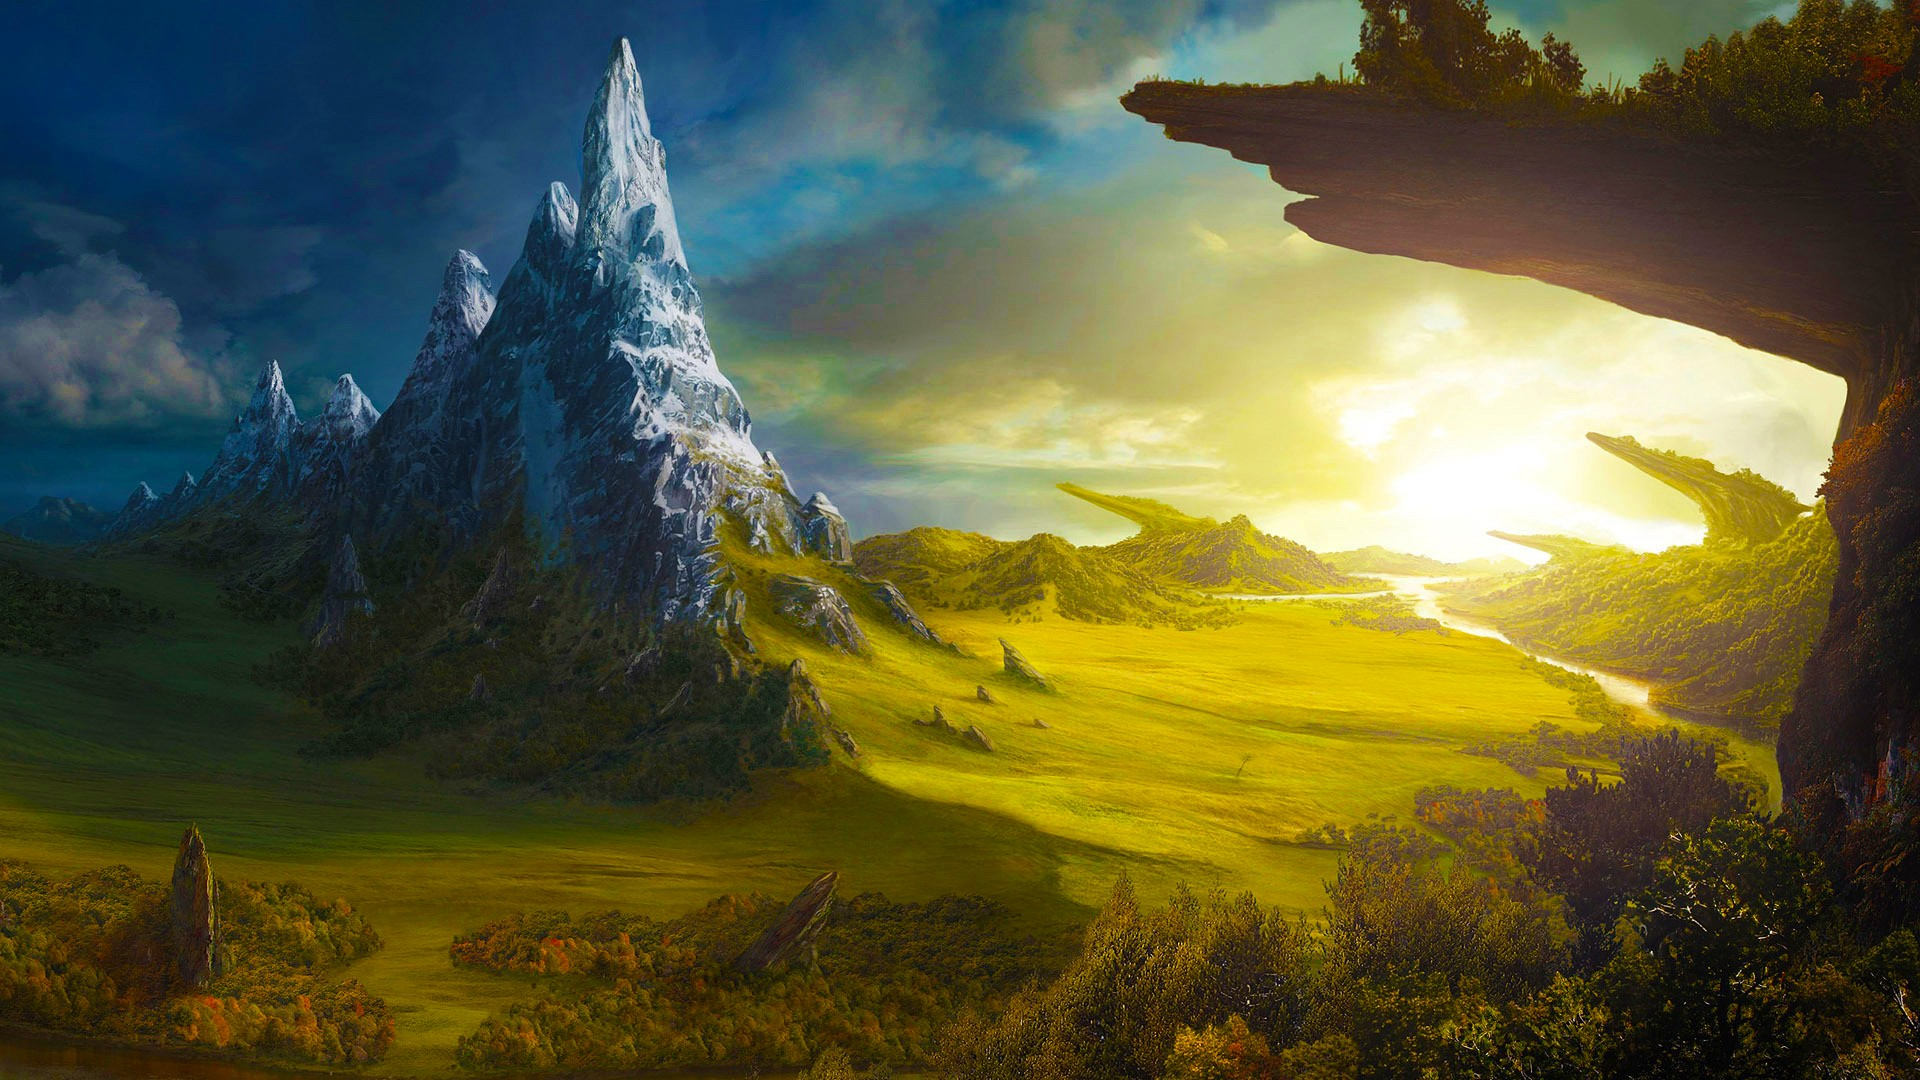 Fantasy World Images 9 Thumb. Fantasy World Images 9 HD Wallpapers